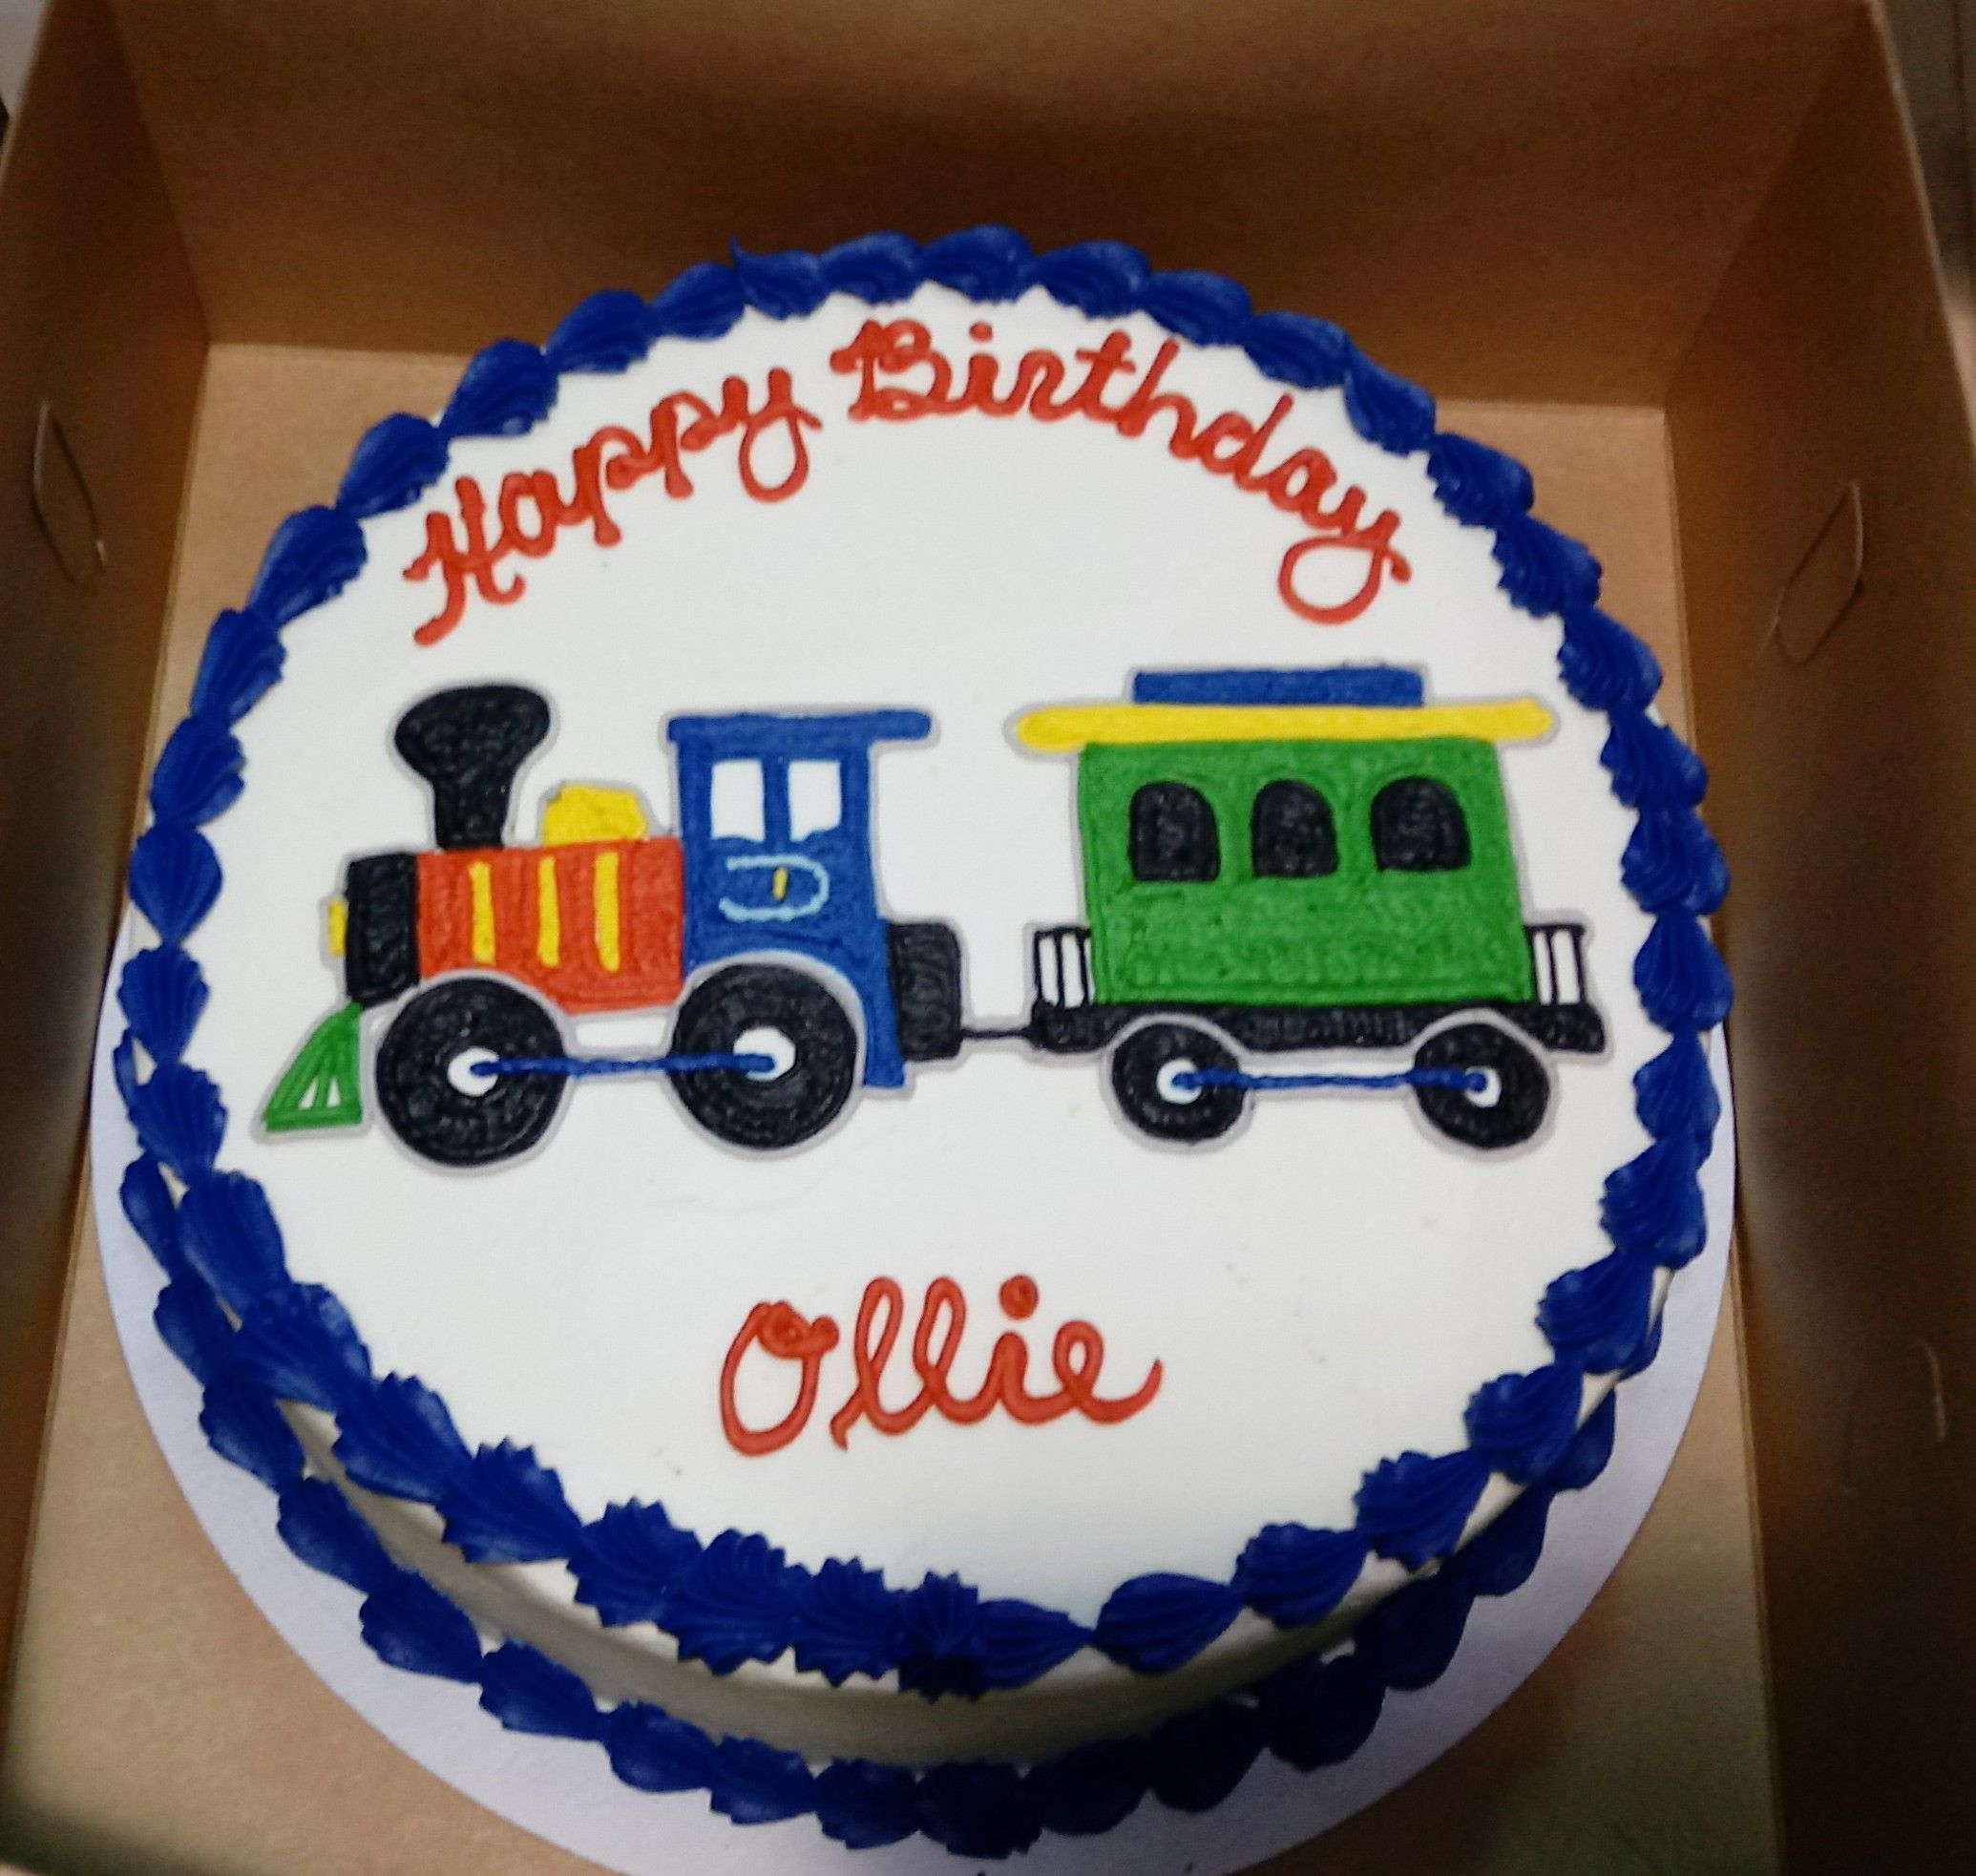 Colorful Train Engine And Caboose Drawn On A Birthday Cake For A